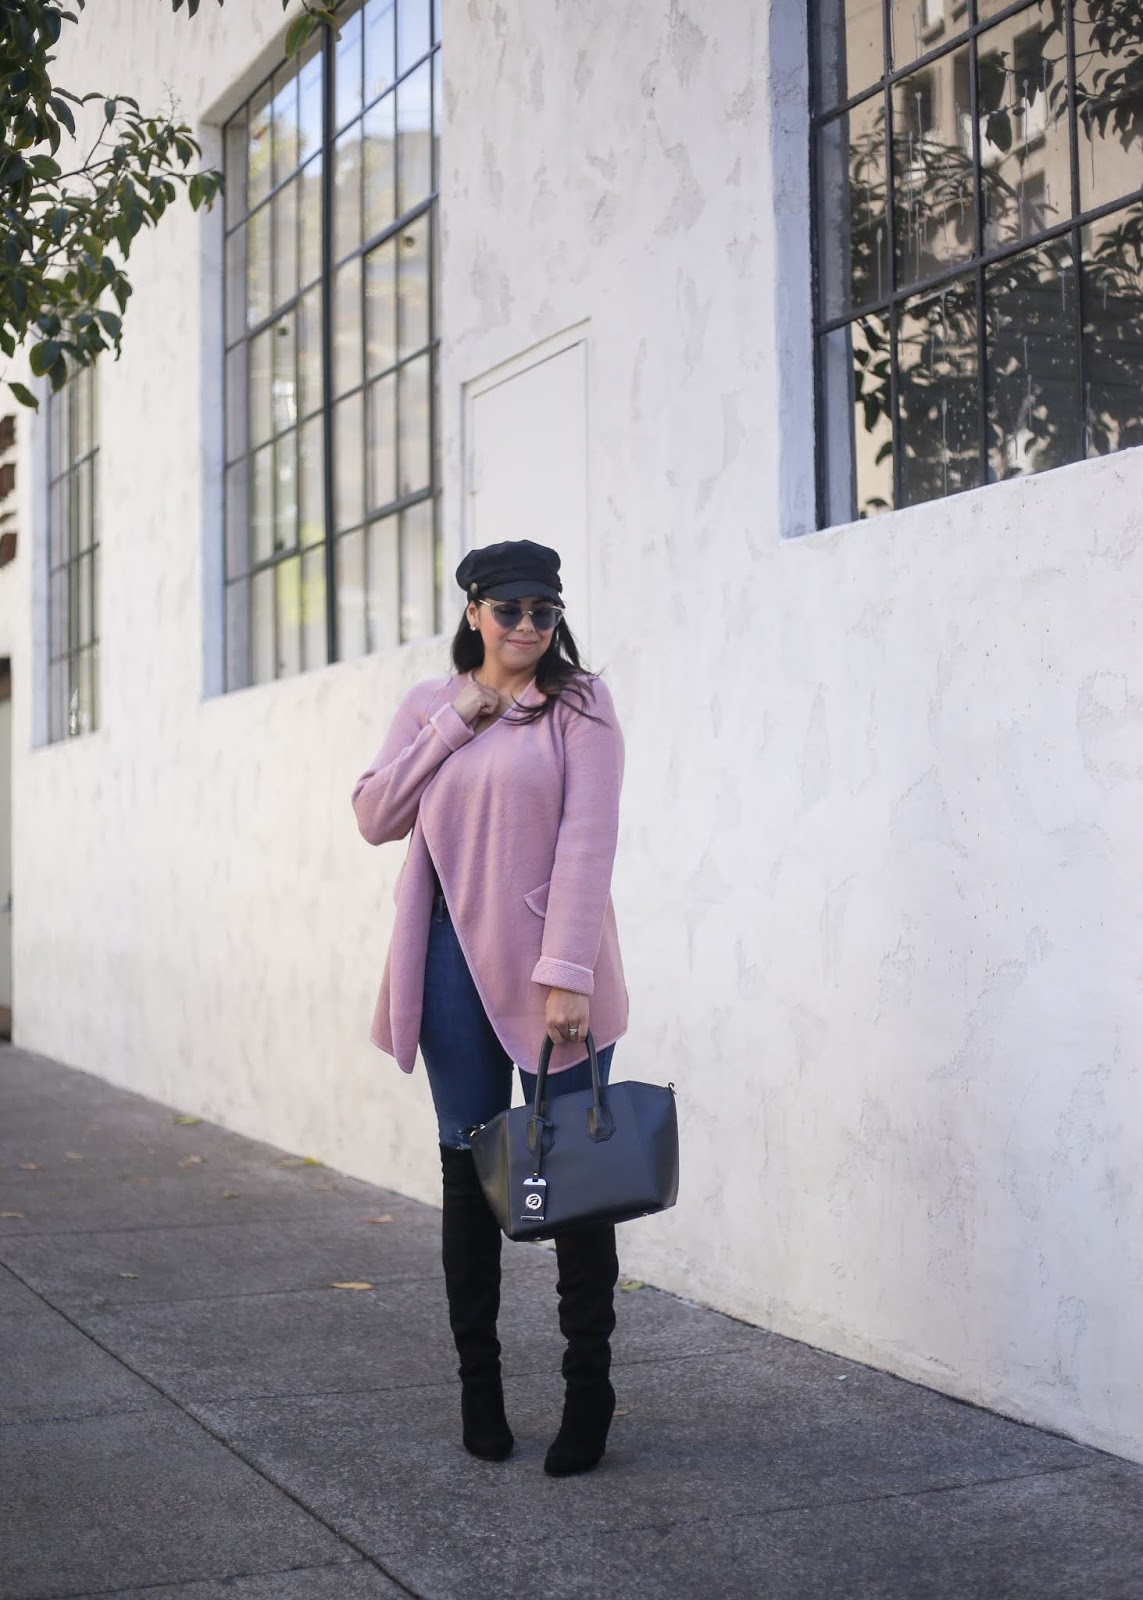 fall fashion 2018, socal fall fashion 2018, how to wear a pink sweater in fall